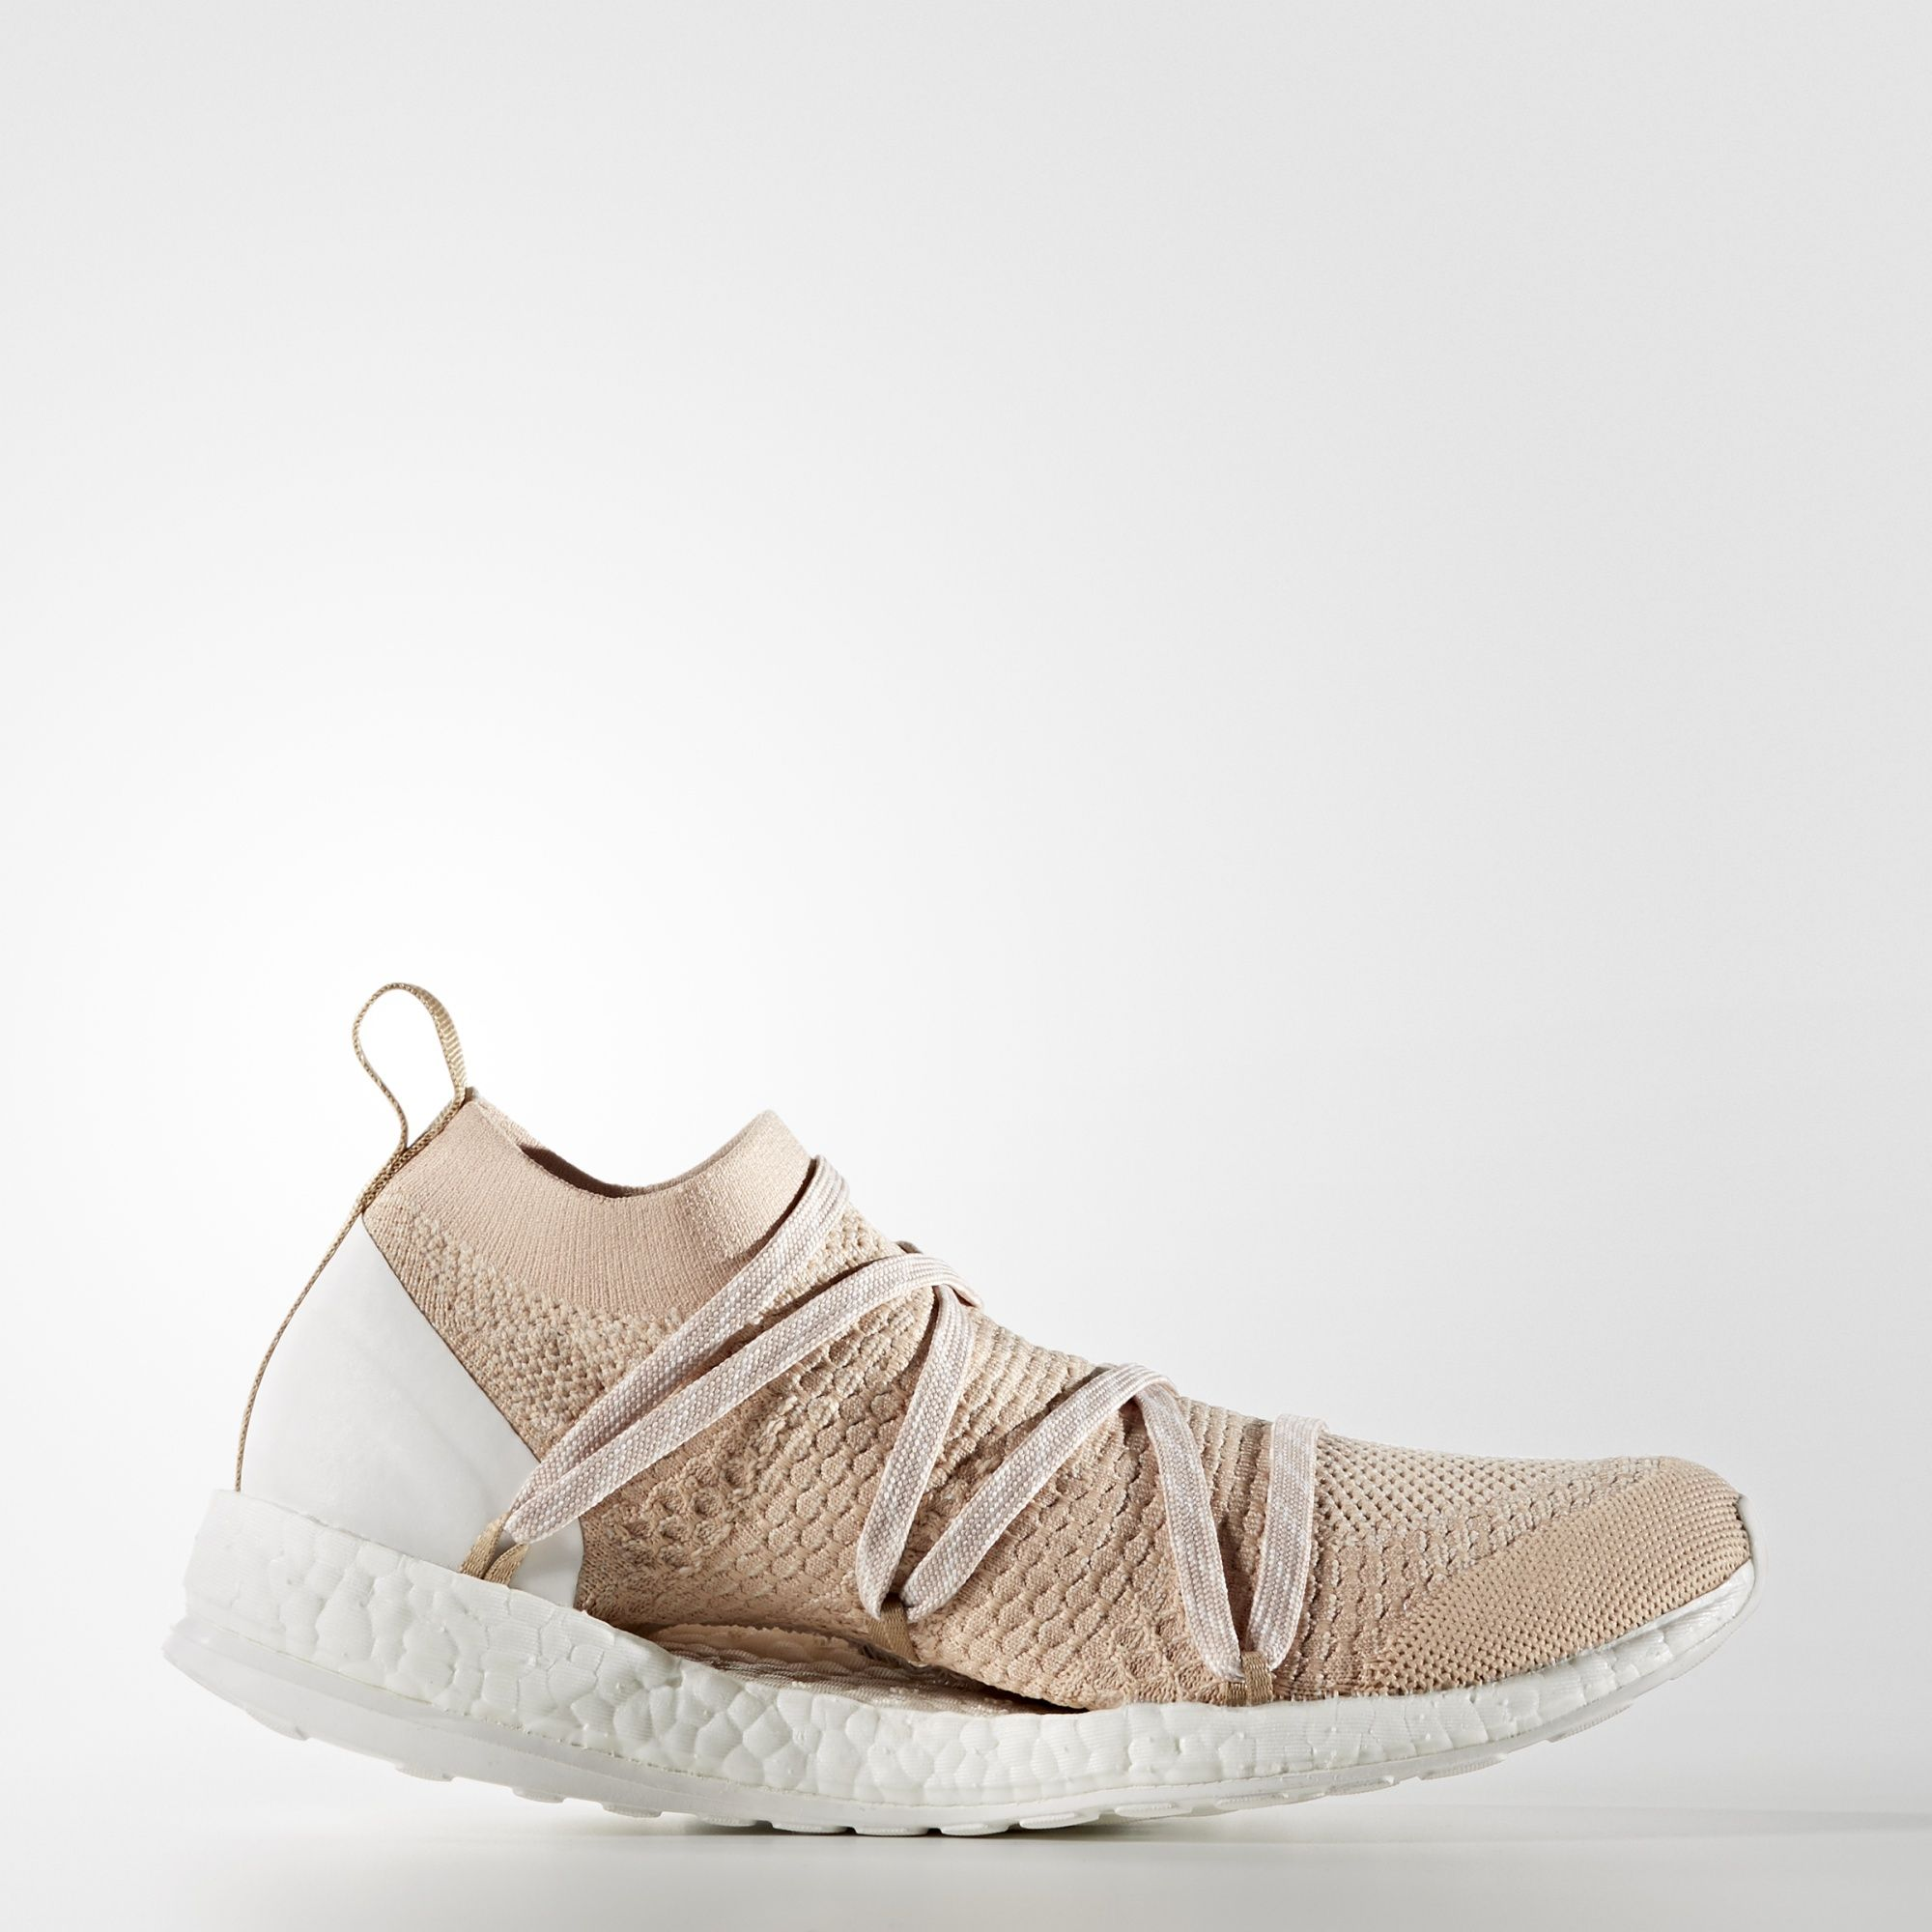 the latest fd3f0 c70e9 These adidas by Stella McCartney Pure Boost X Shoes give an outrageously  comfortable fit to all foot types. An adidas Primeknit upper incorporates a  ...